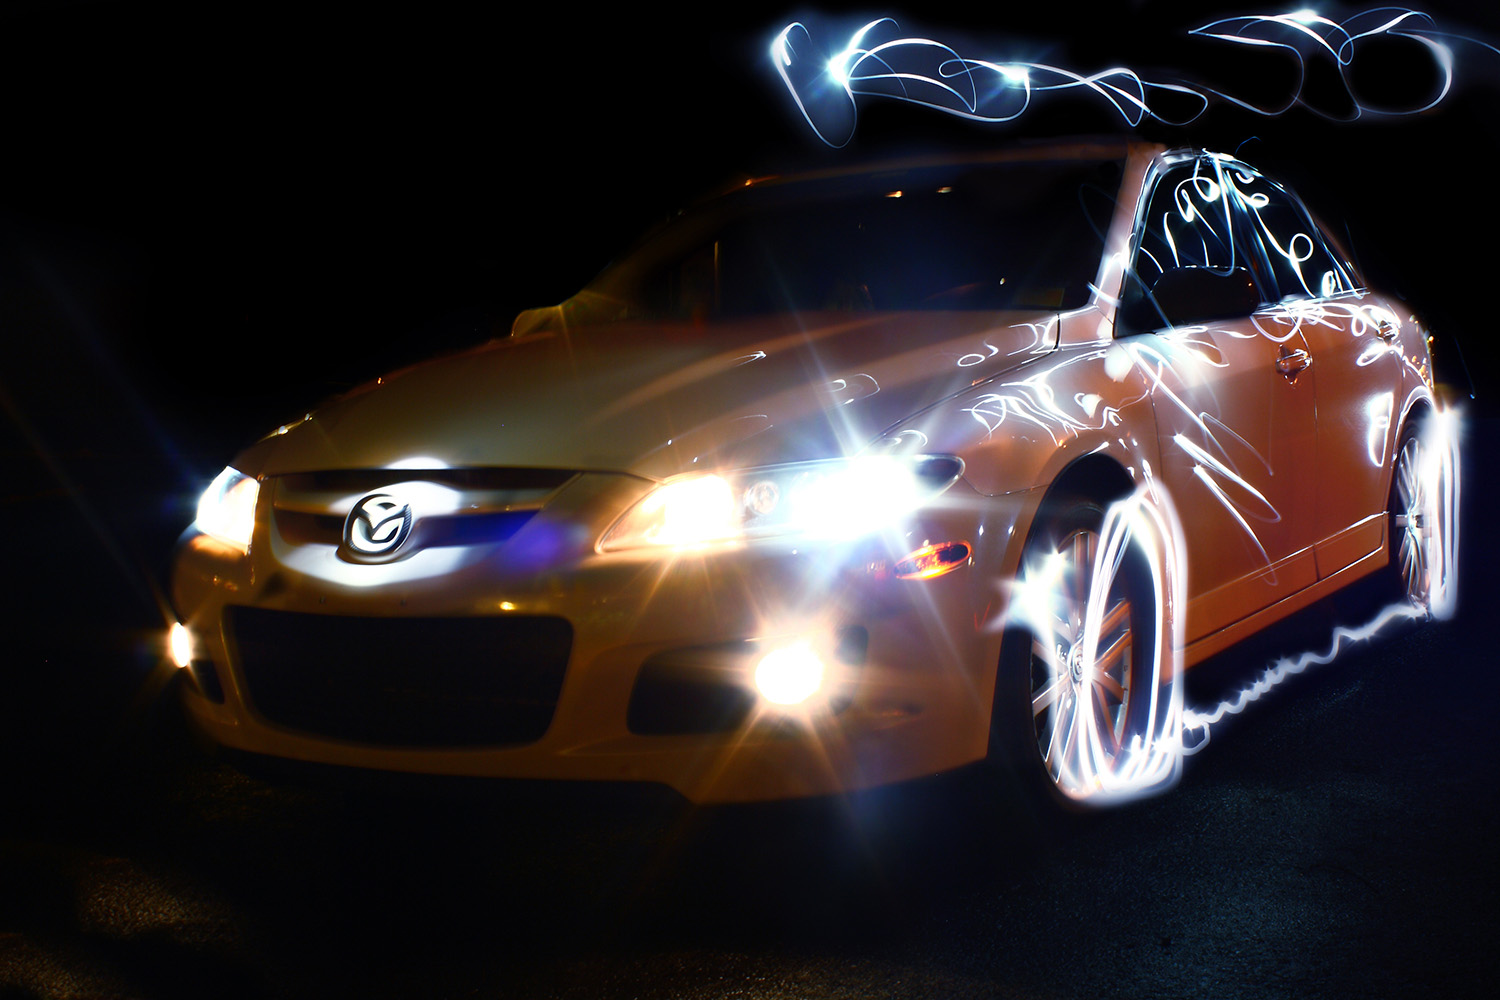 Mazda Lights Composite.jpg